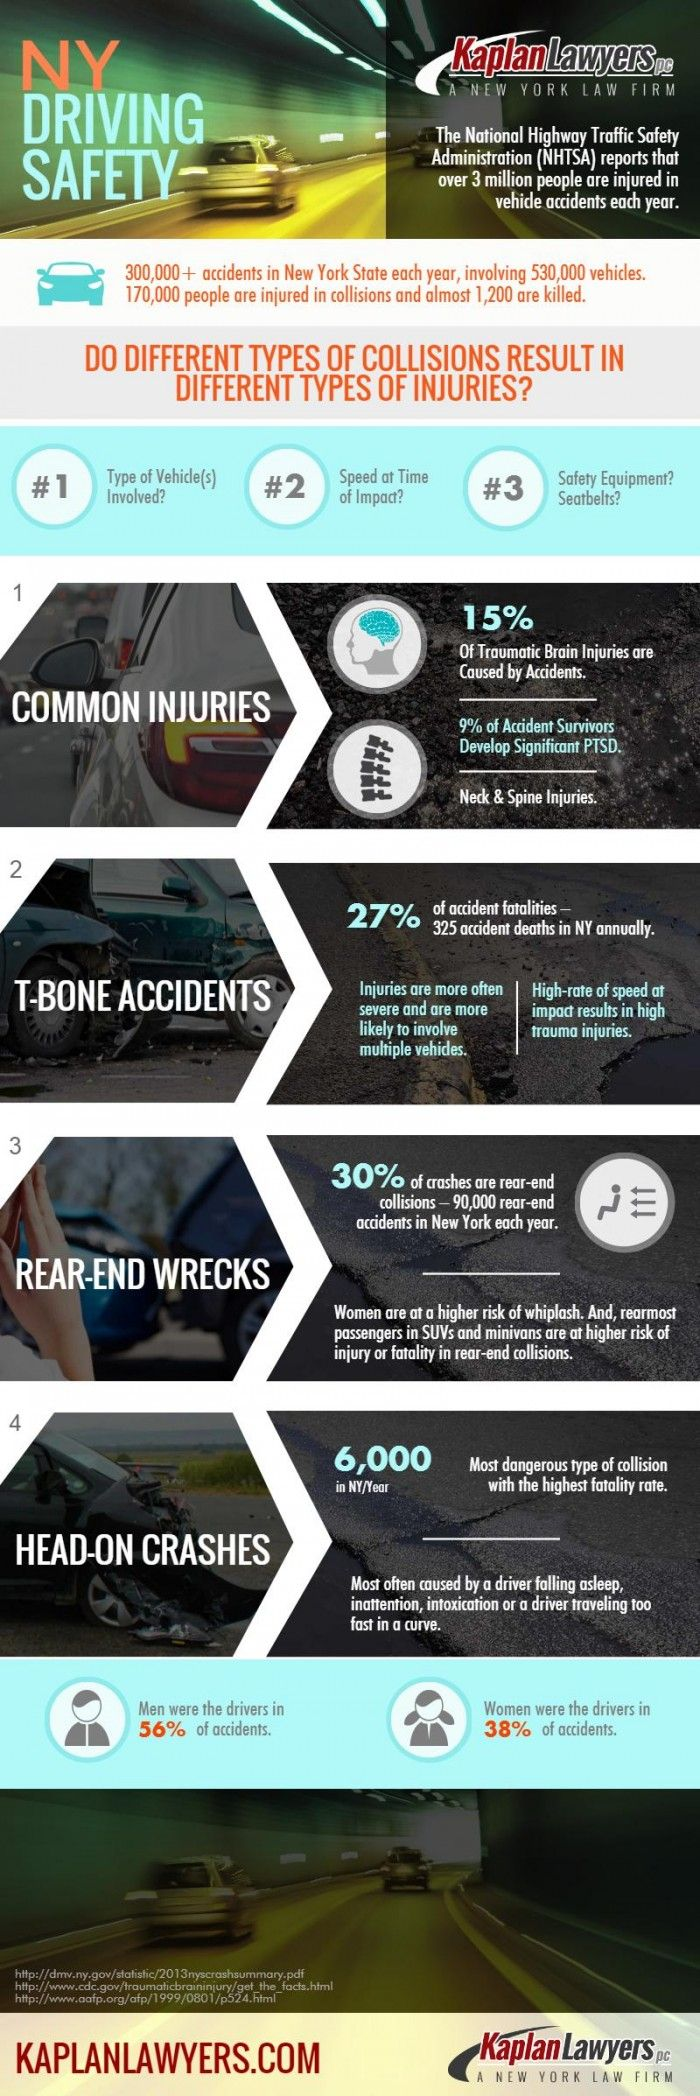 http://www.dailyinfographic.com/your-guide-to-new-york-driving-safety